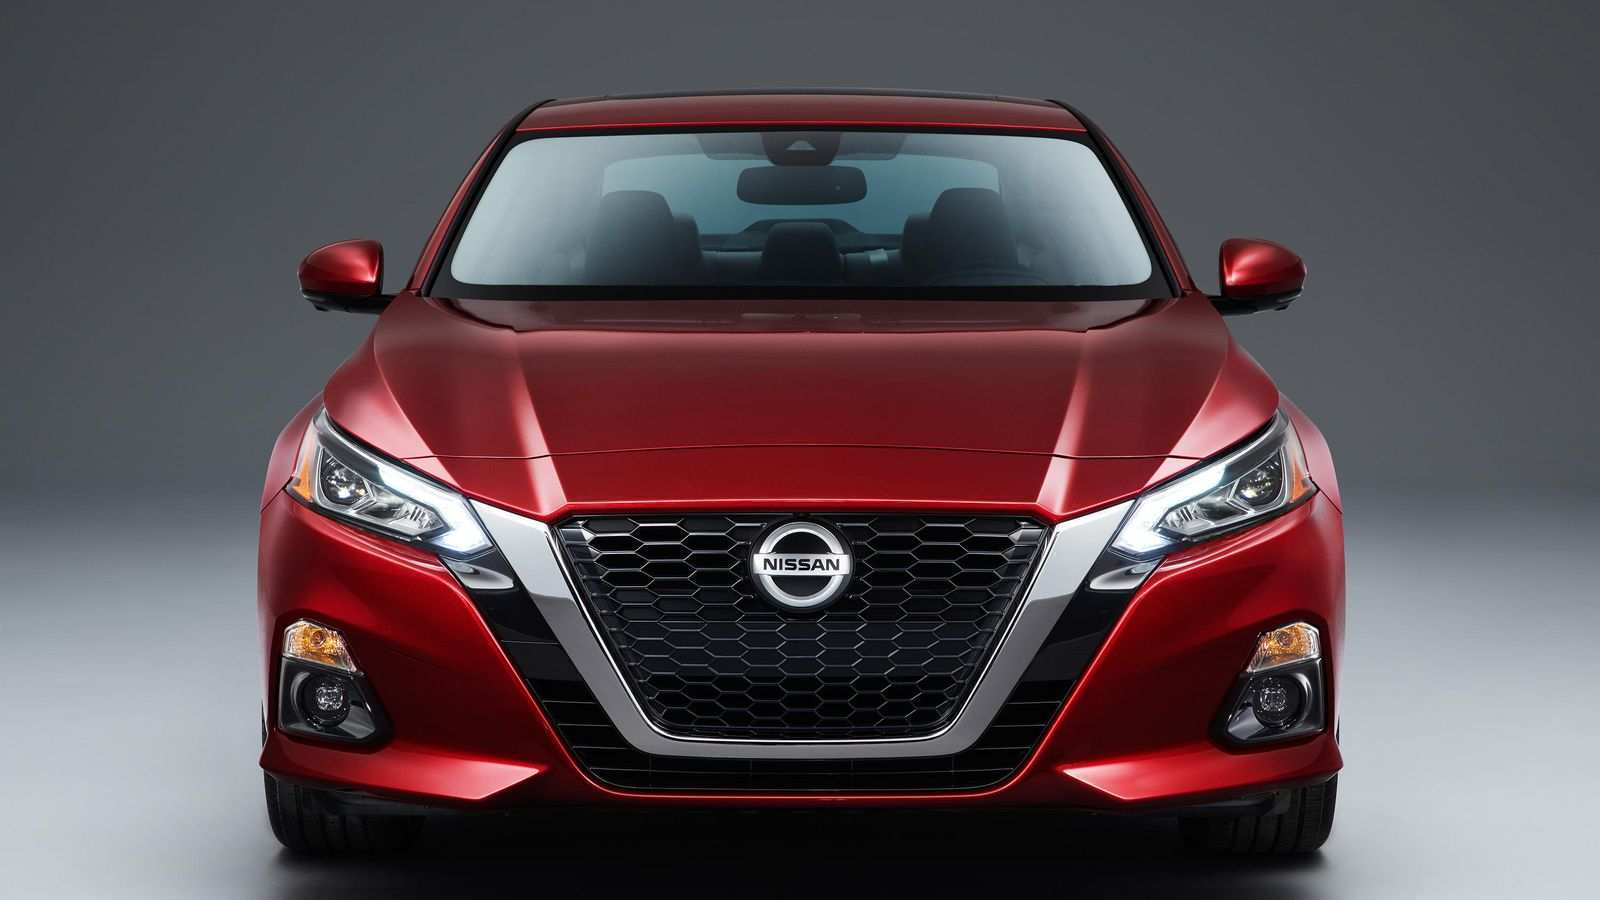 96 The Nissan Altima 2019 Horsepower Picture